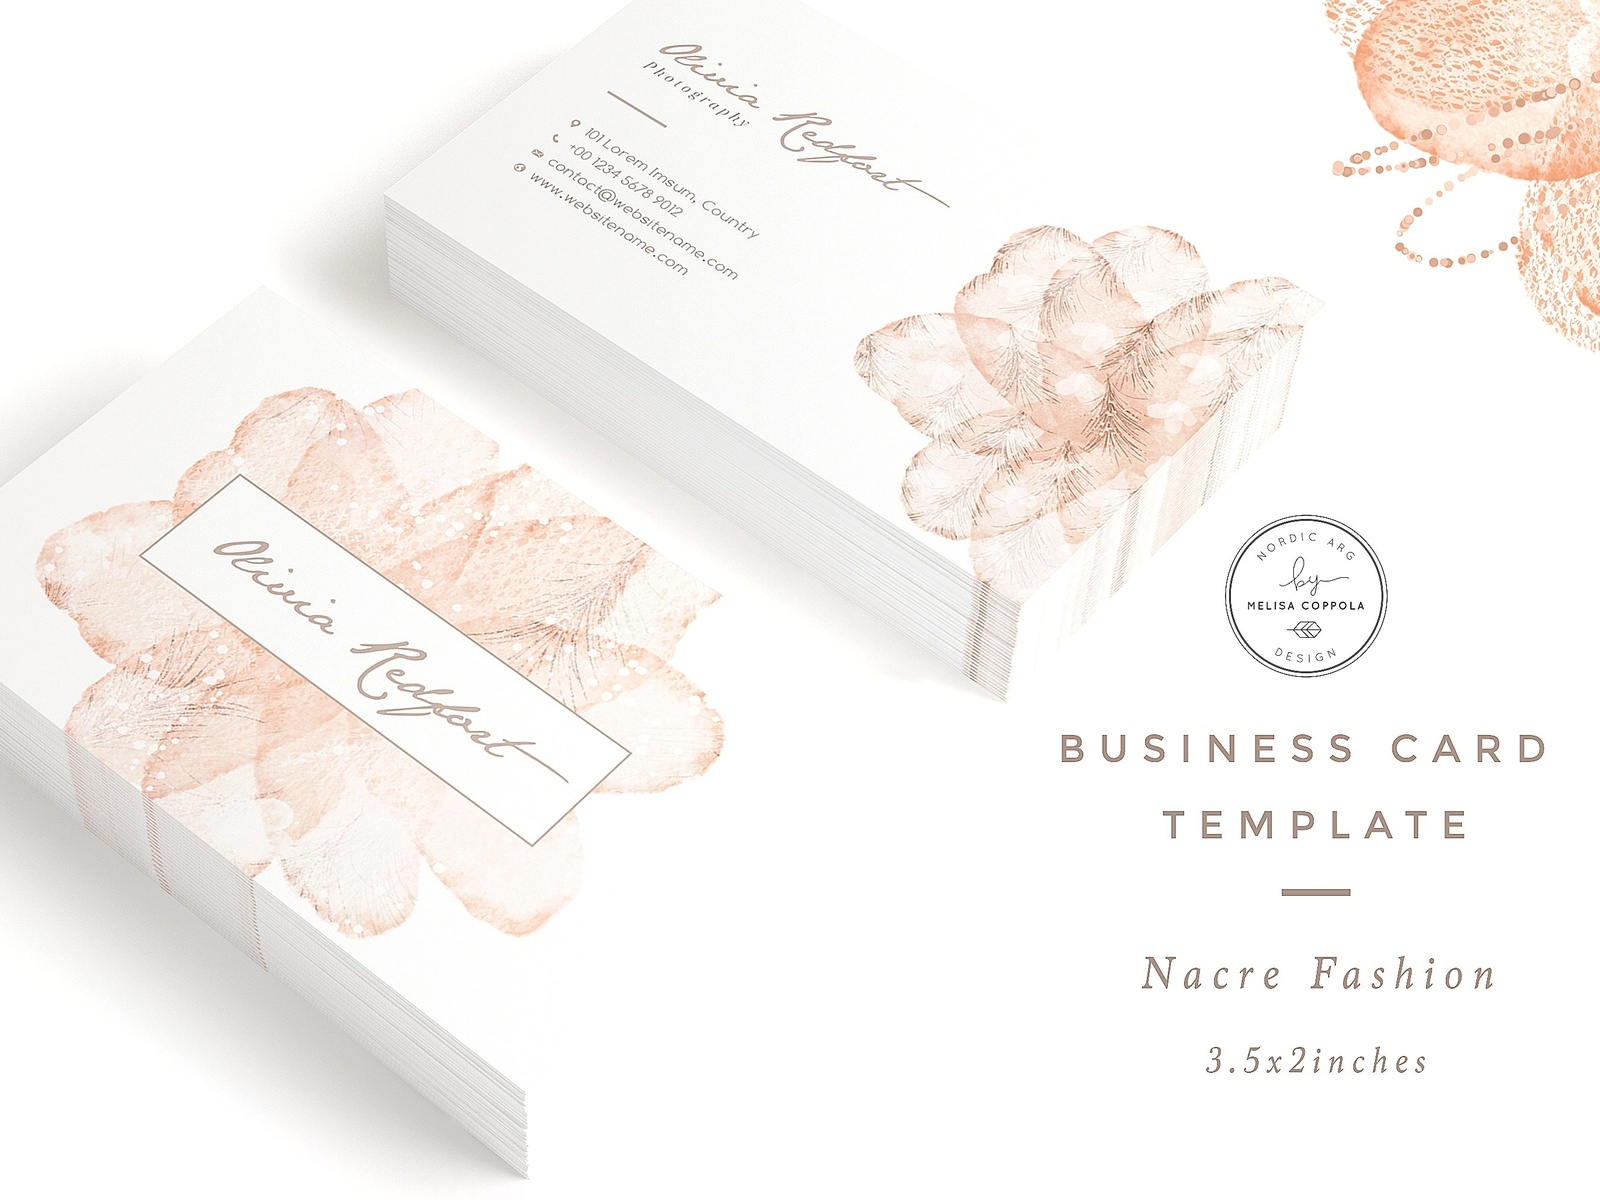 Nacre fashion business card template by business cards dribbble httpscreativemarketmelippola1201219 nacre fashion business card templateuaurom accmission Image collections